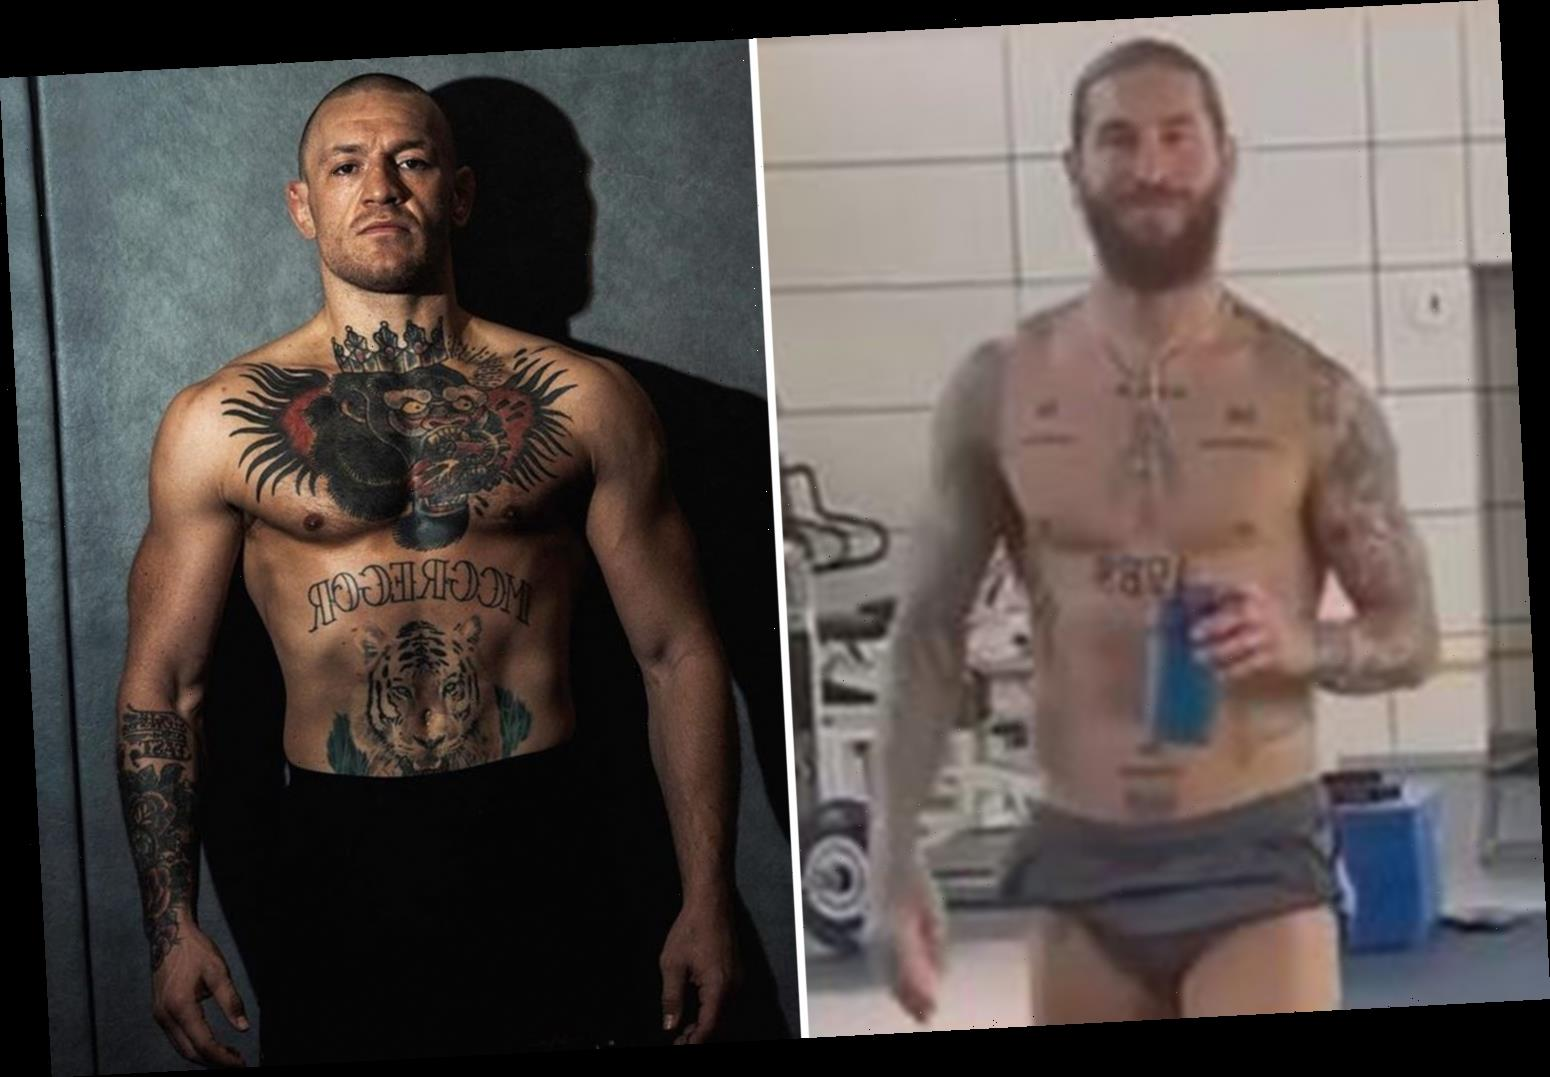 Conor McGregor tells Sergio Ramos to 'stay ready' after Real Madrid ace 'calls out' UFC star and shows off ripped body